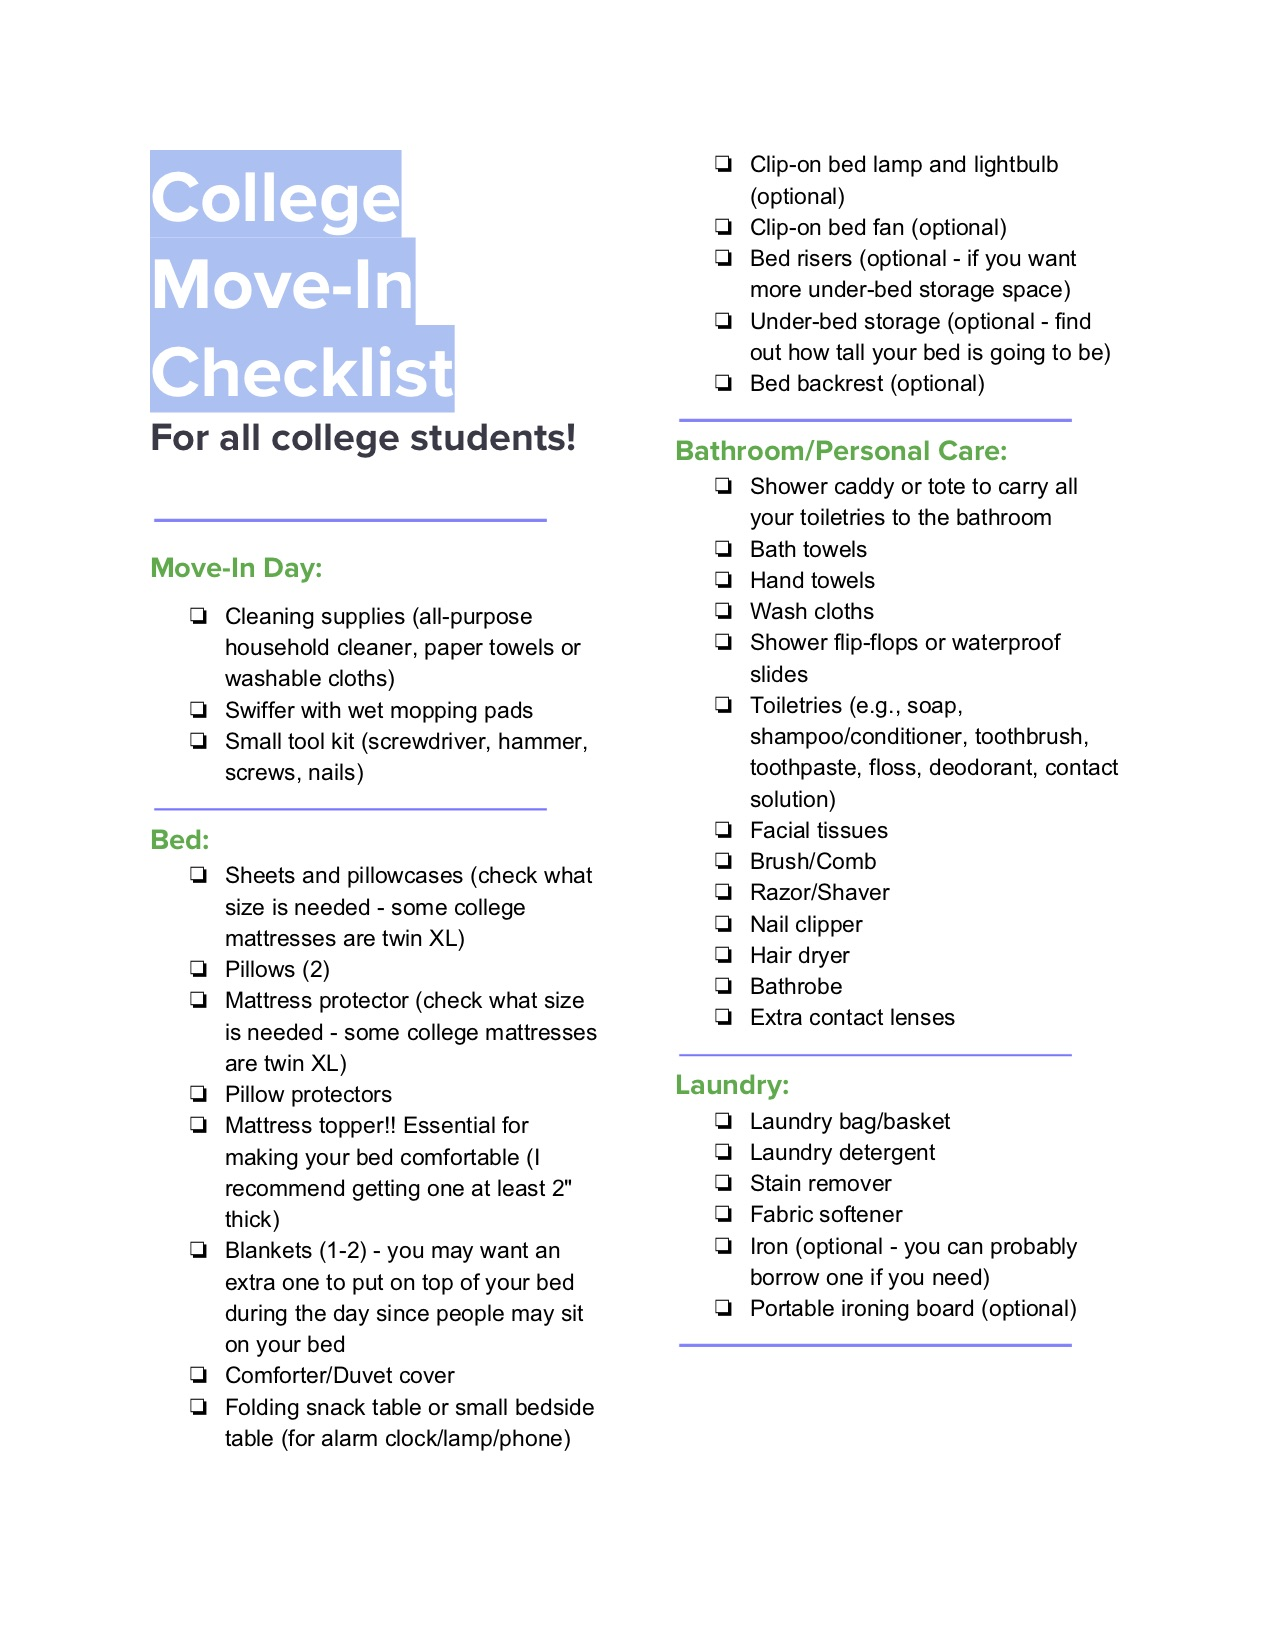 College Move In Checklist